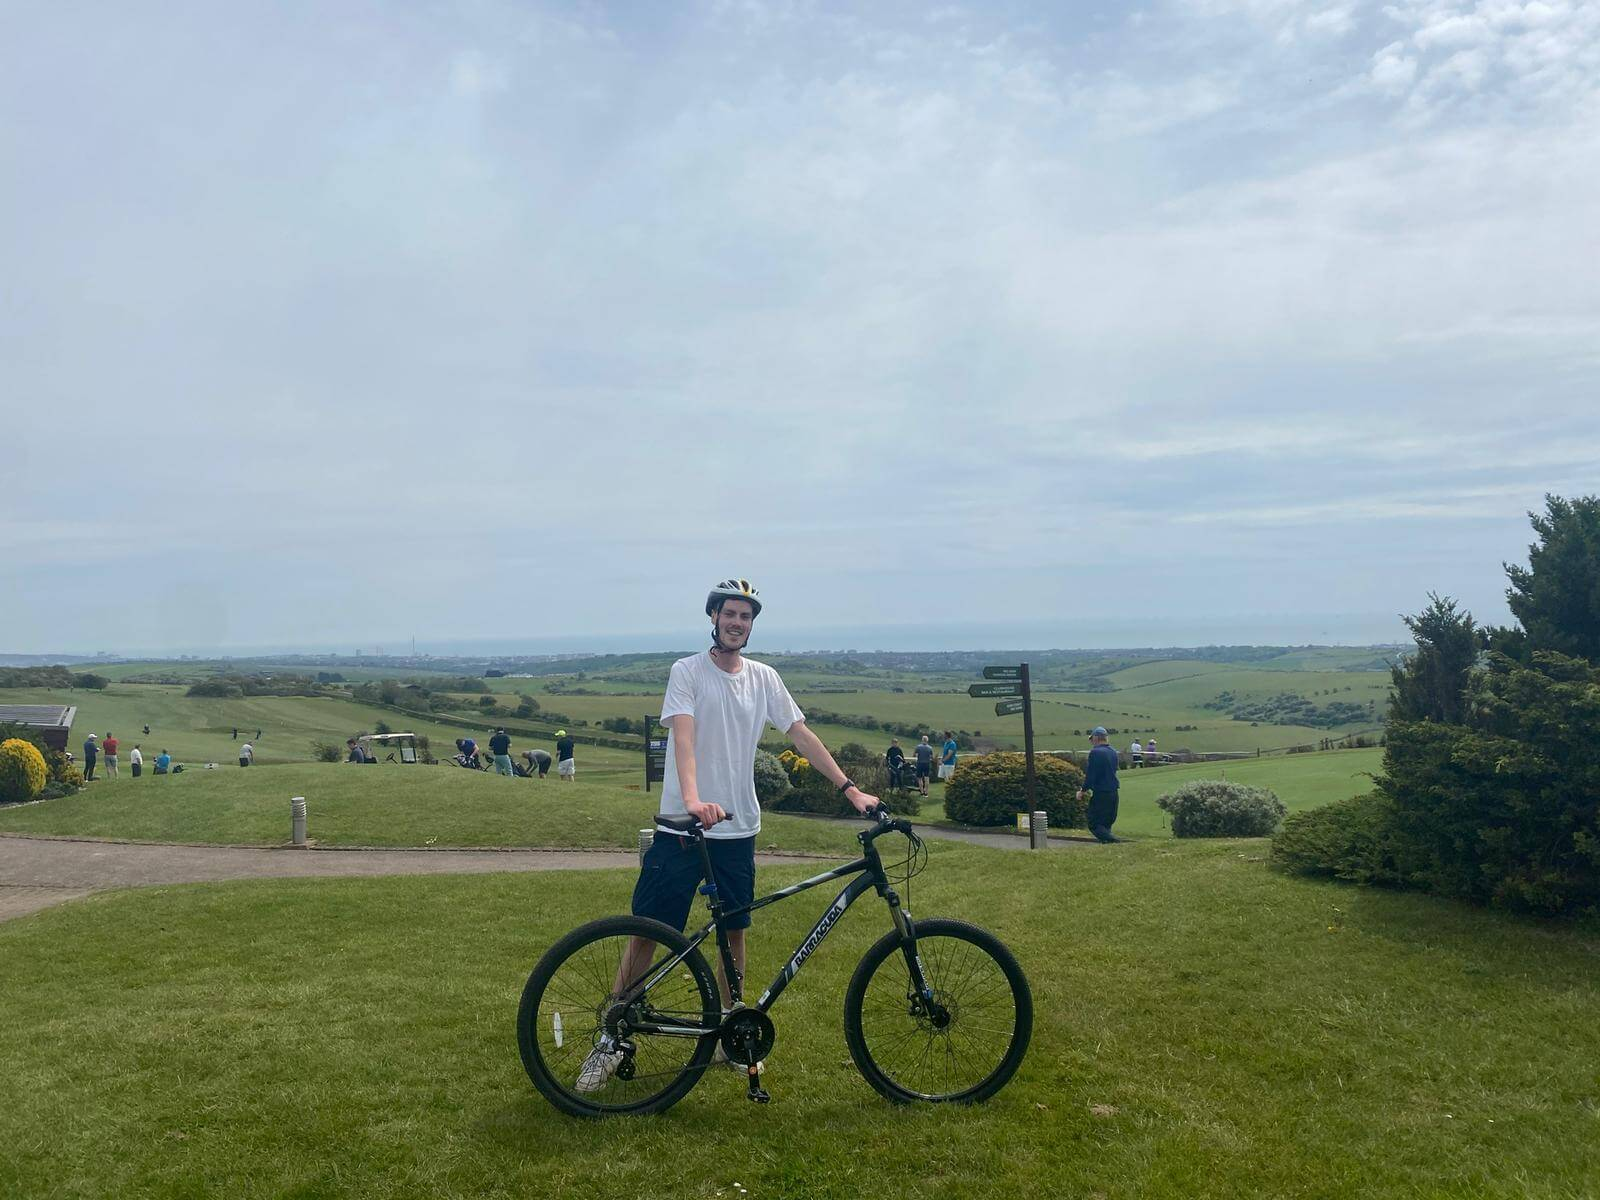 Rory and bike in the countryside